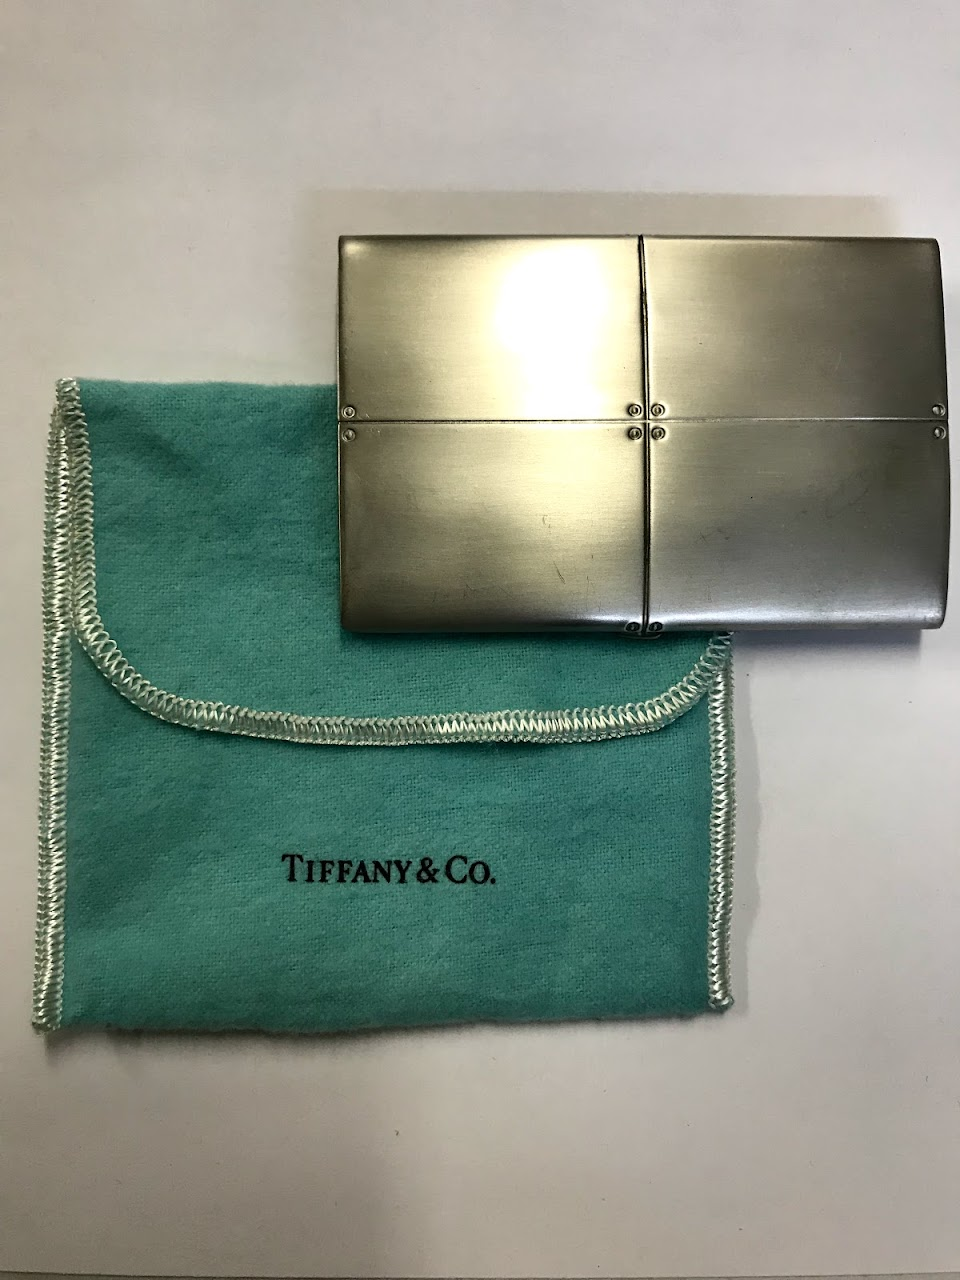 Tiffany & Co. Sterling Silver Streamerica Business Card Case ...